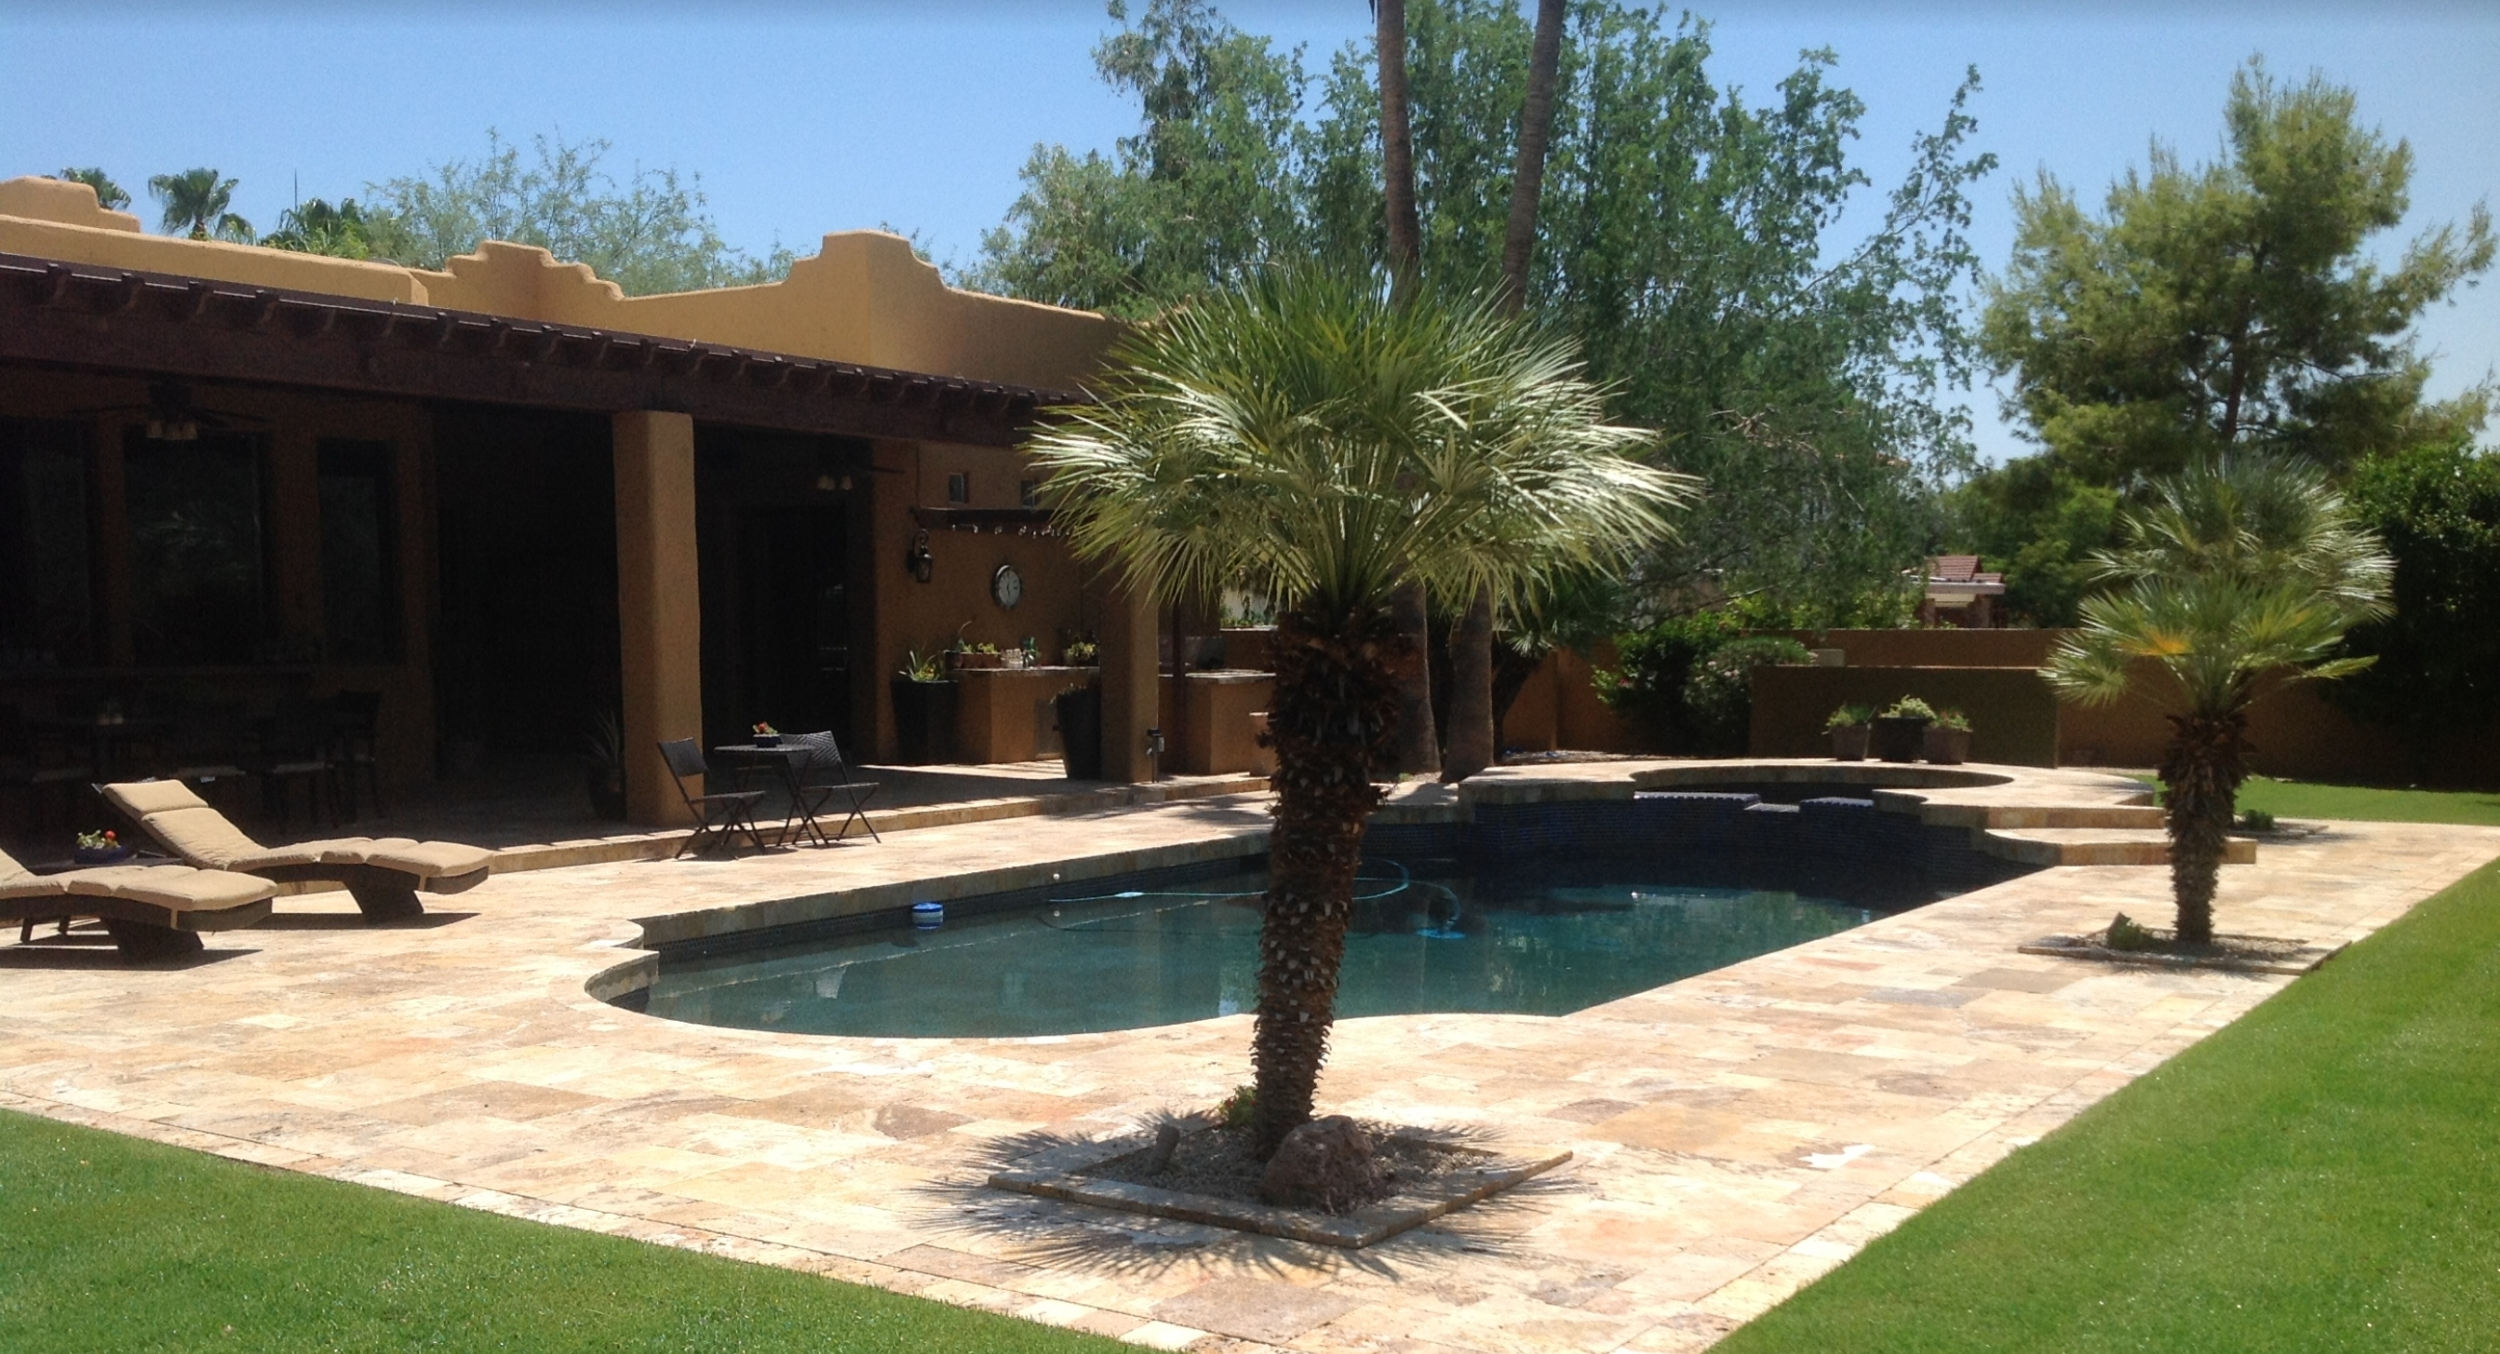 Rich-colored new travertine paving refreshed this whole backyard. Gorgeous Scottsdale pool deck remodel included replacing the lawn with fresh sod too.